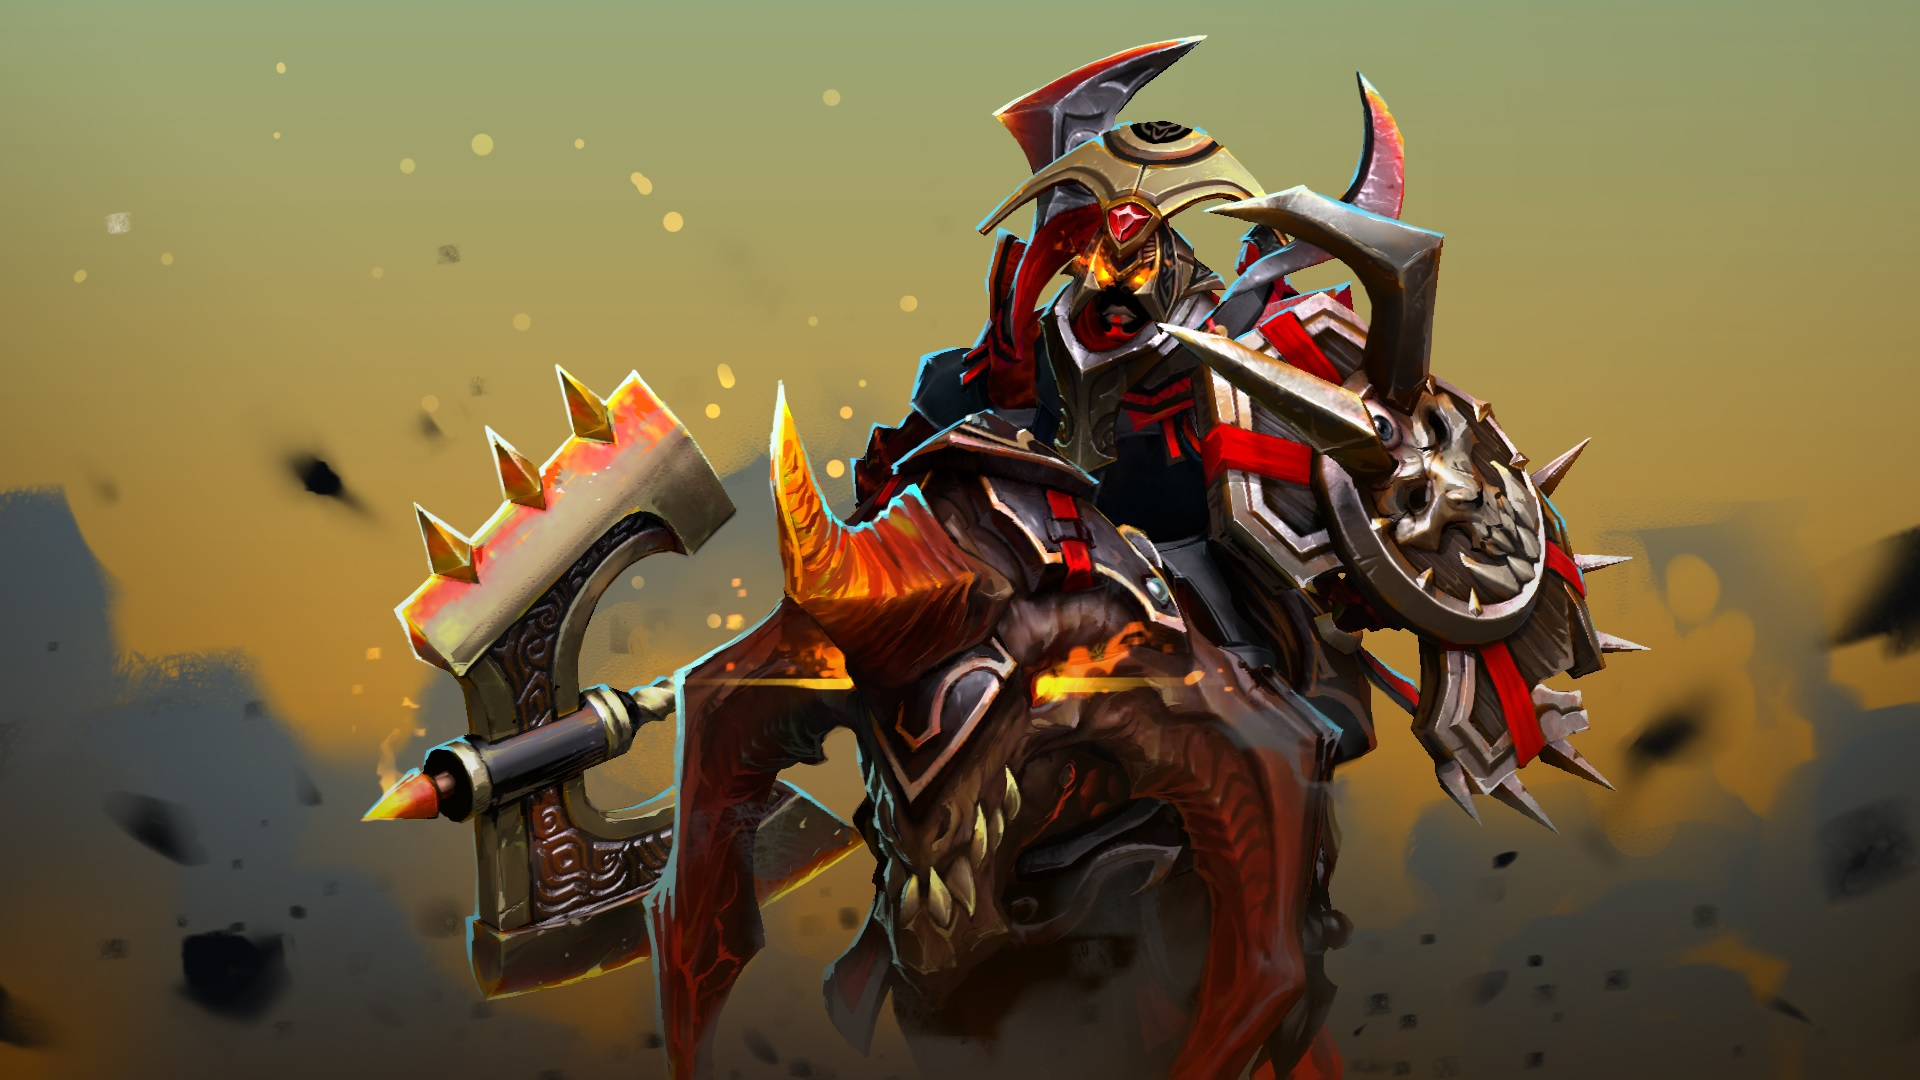 Chaos Knight Wallpapers Dota2